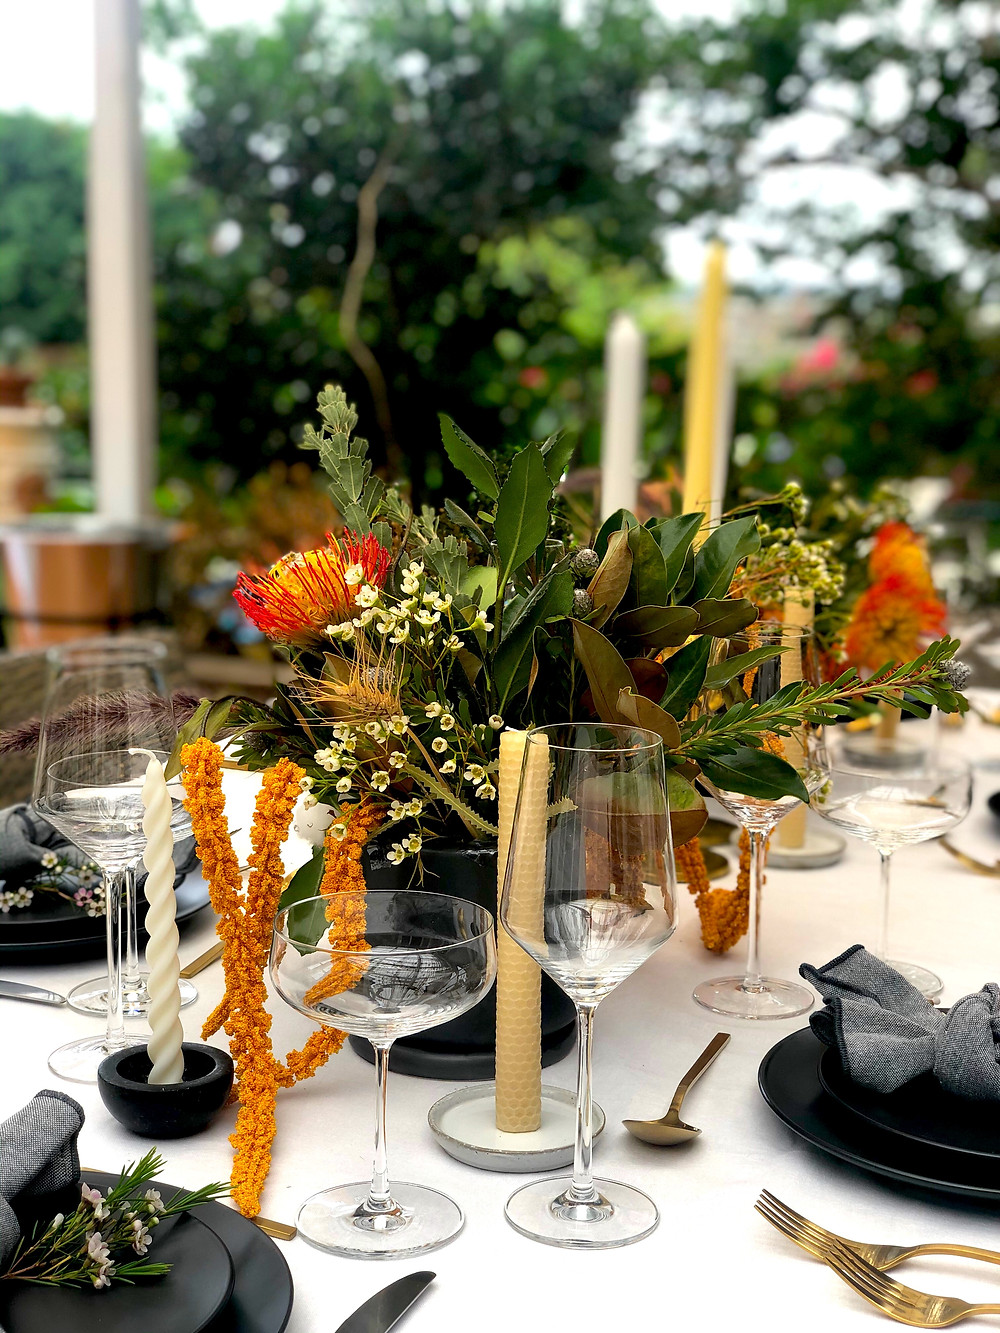 An outdoor table setting. There is native Australian flora on the table atop a white tablecloth. There are natural beeswax candles and black dinging plates with gold cutlery